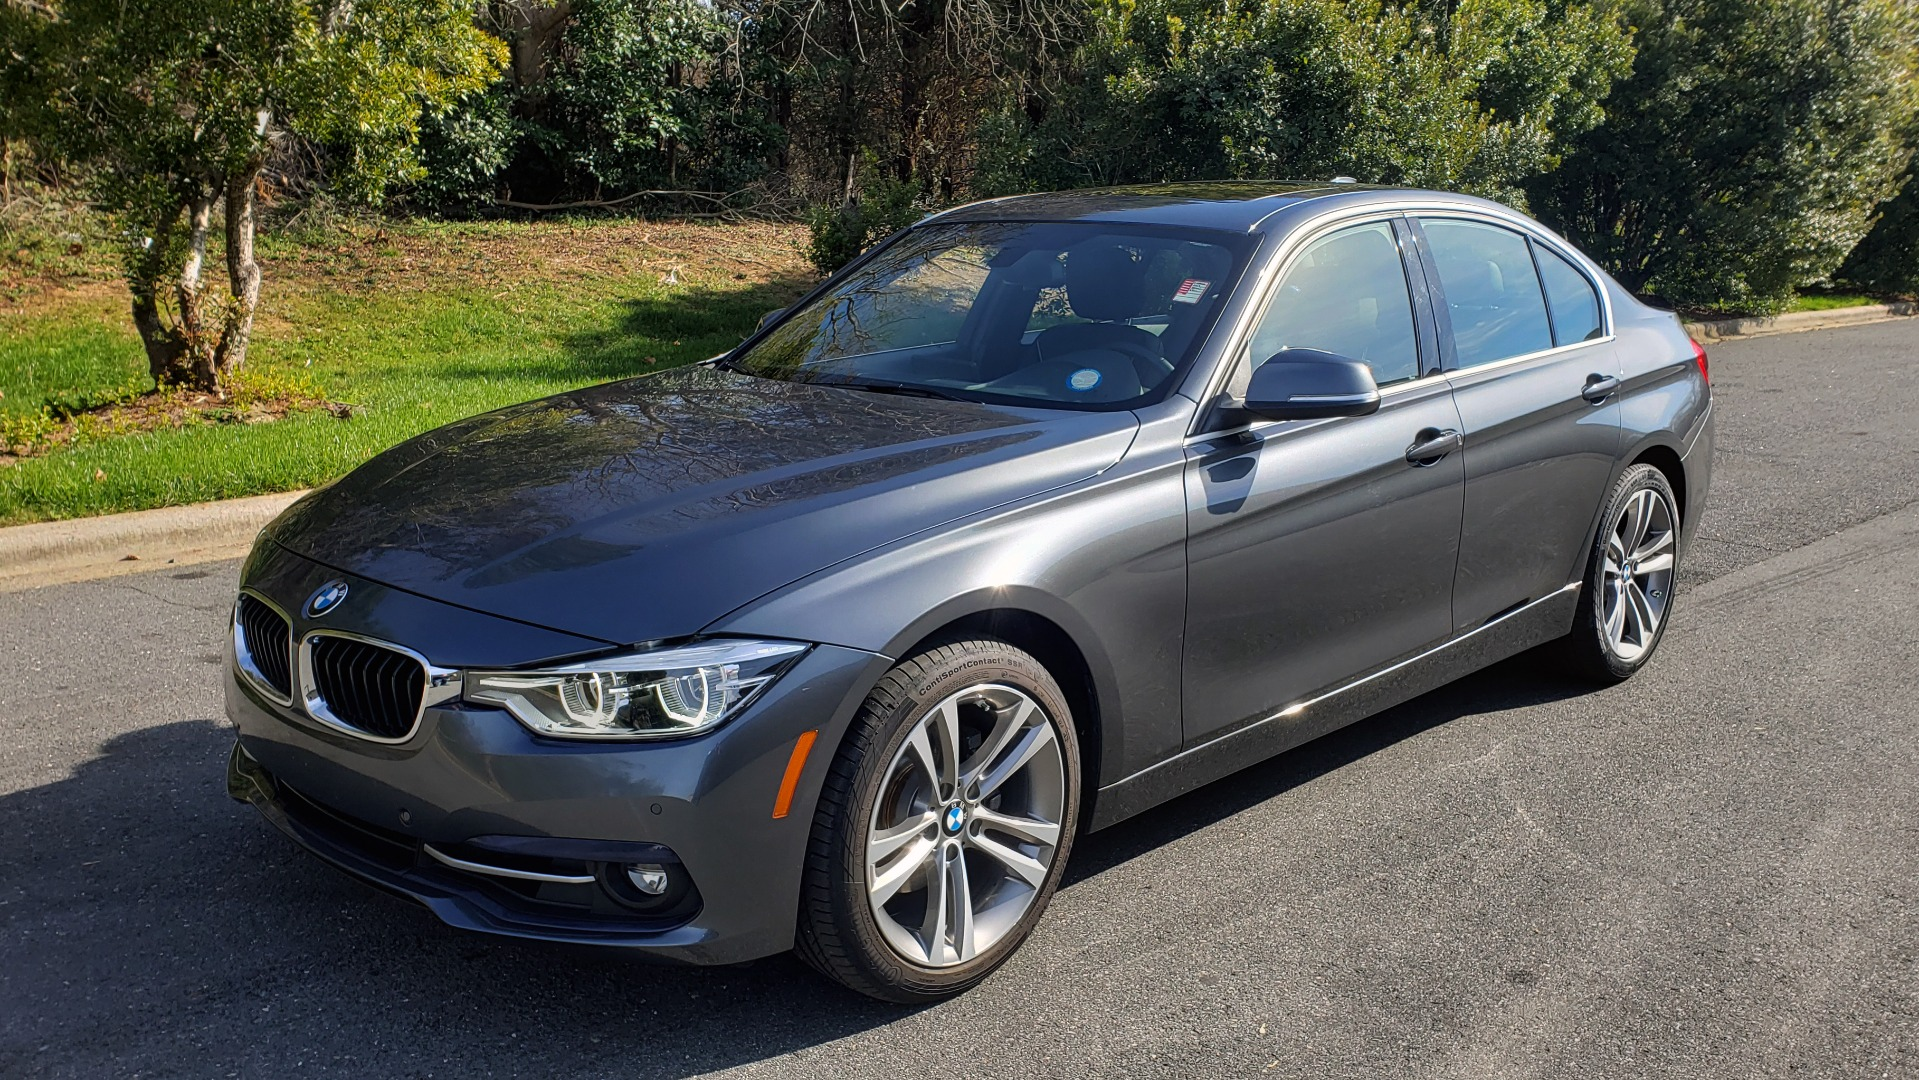 Used 2017 BMW 3 SERIES 330I PREMIUM / DRVR ASST / NAV / SUNROOF / HTD STS / REARVIEW for sale Sold at Formula Imports in Charlotte NC 28227 1